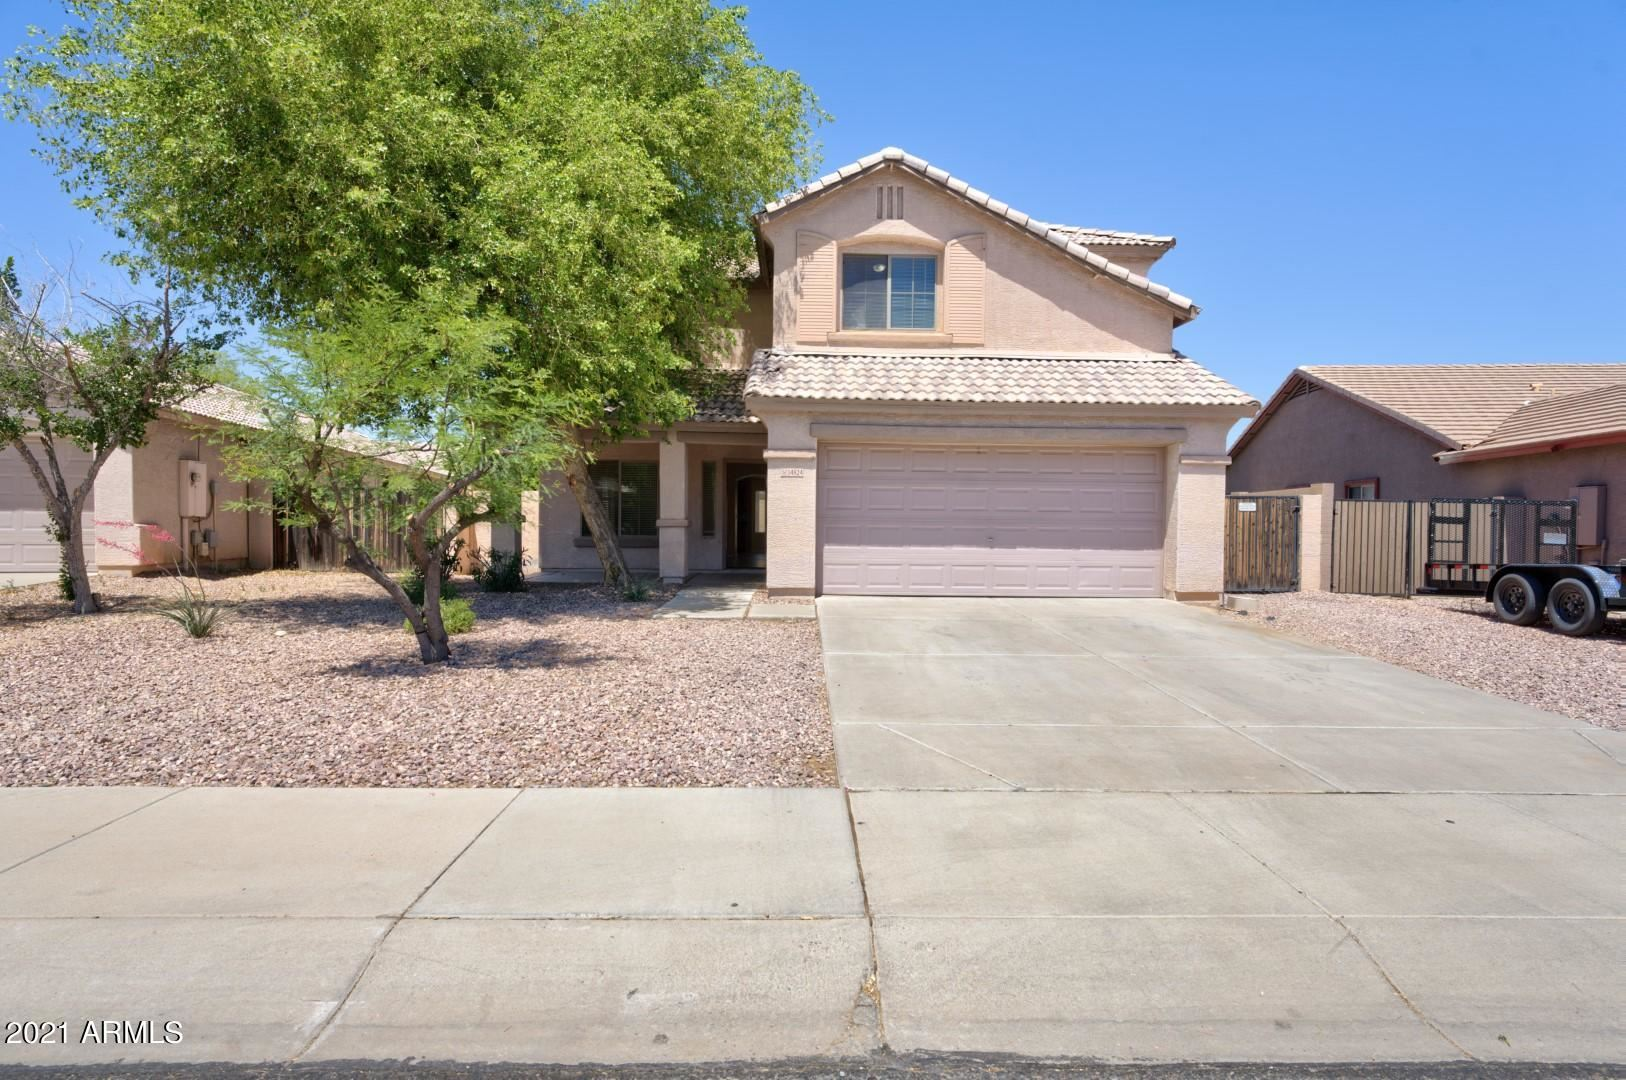 Photo of 14824 W WINDROSE Drive, Surprise, AZ 85379 (MLS # 6231544)